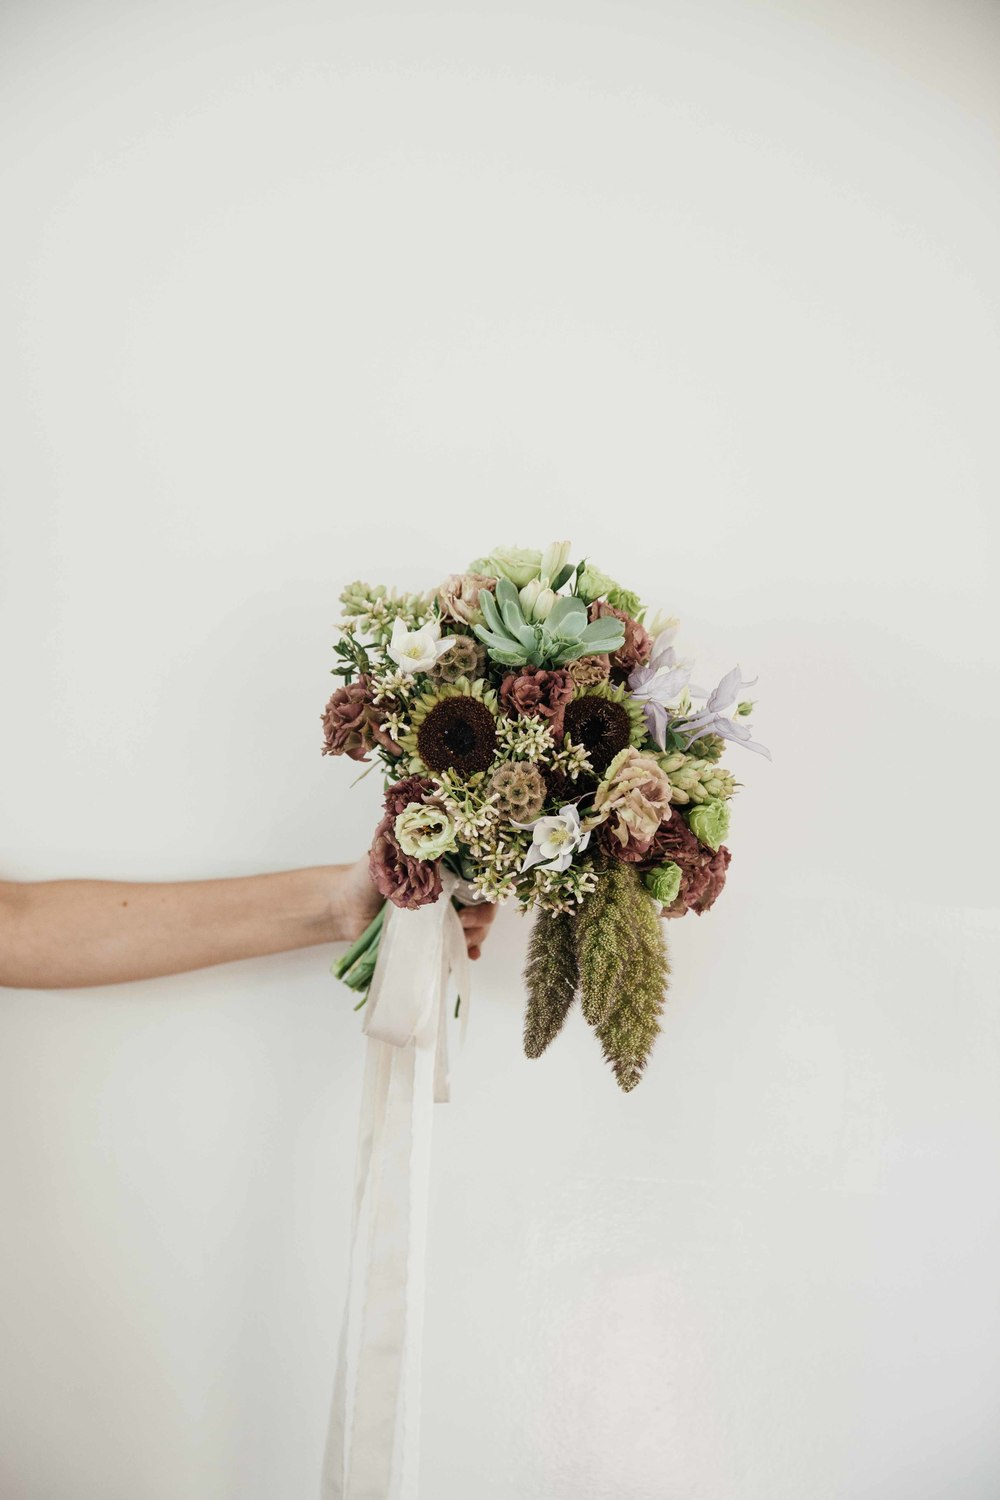 Lovely bouquet from Allium by Olympia